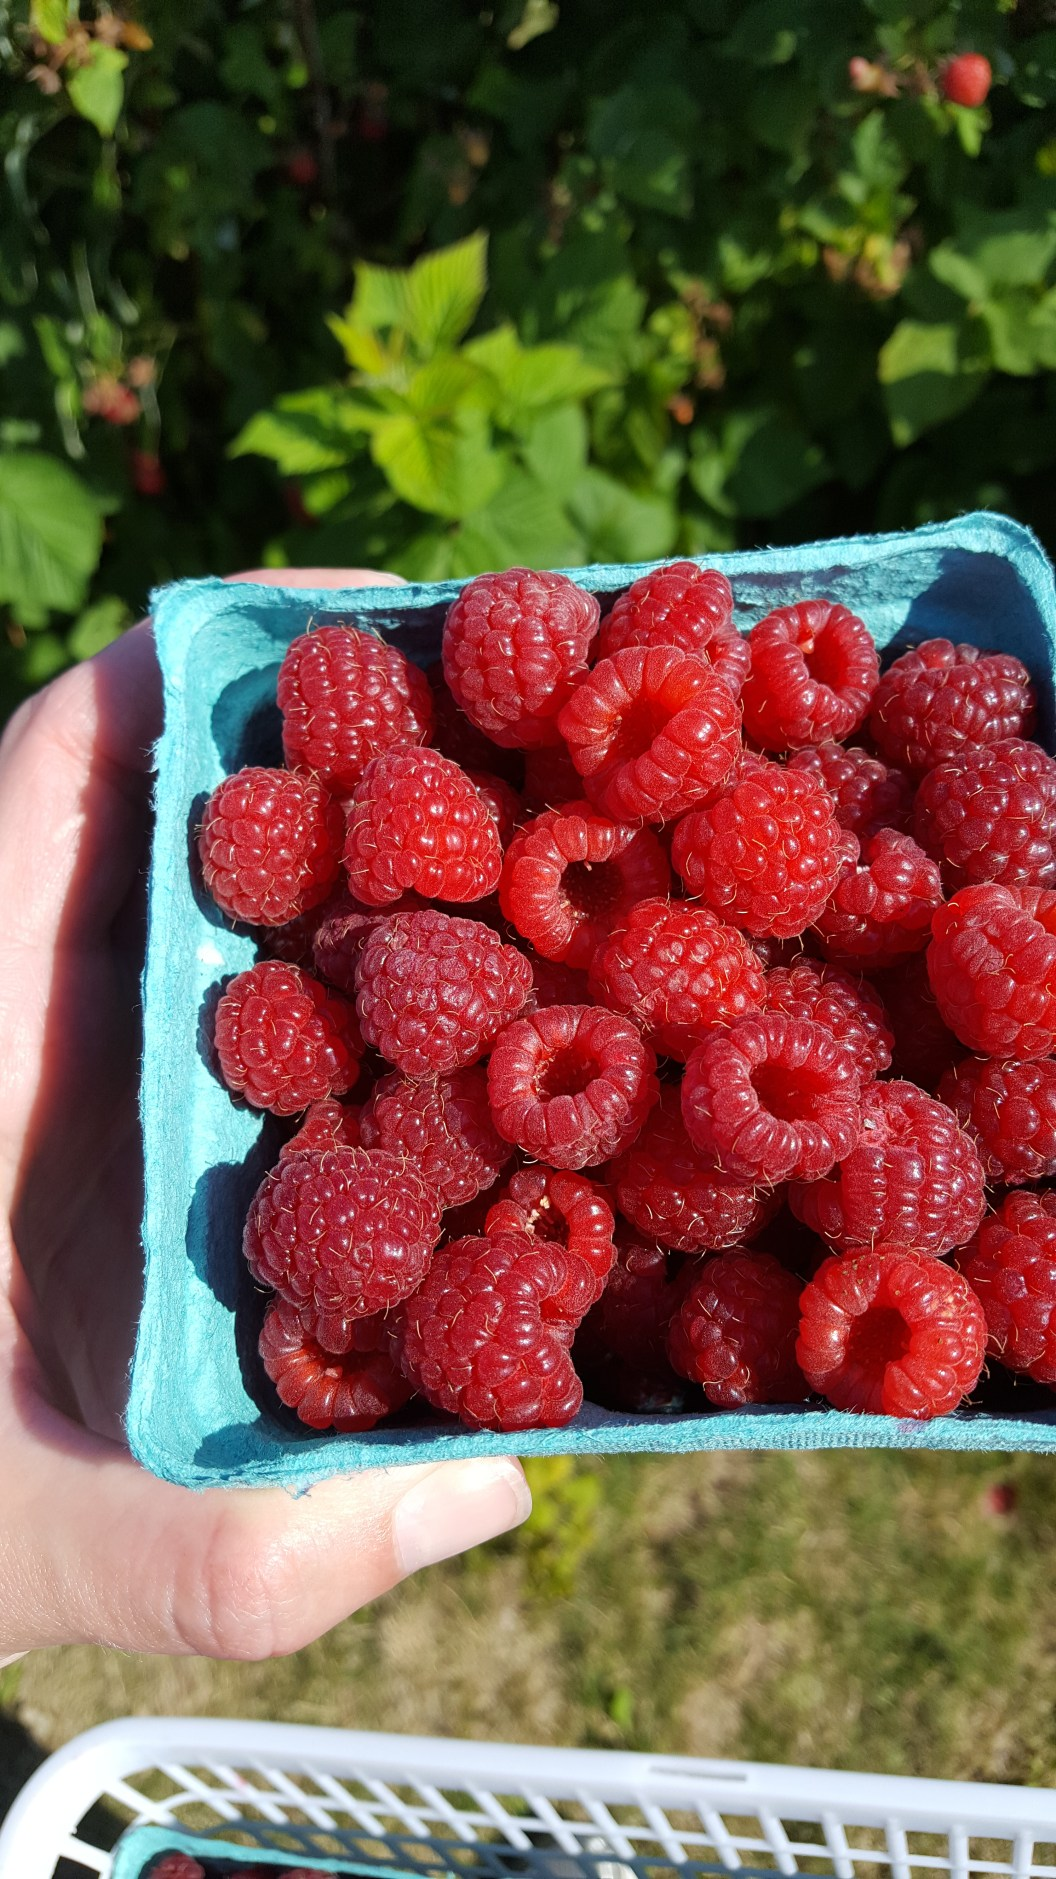 Close up of raspberries